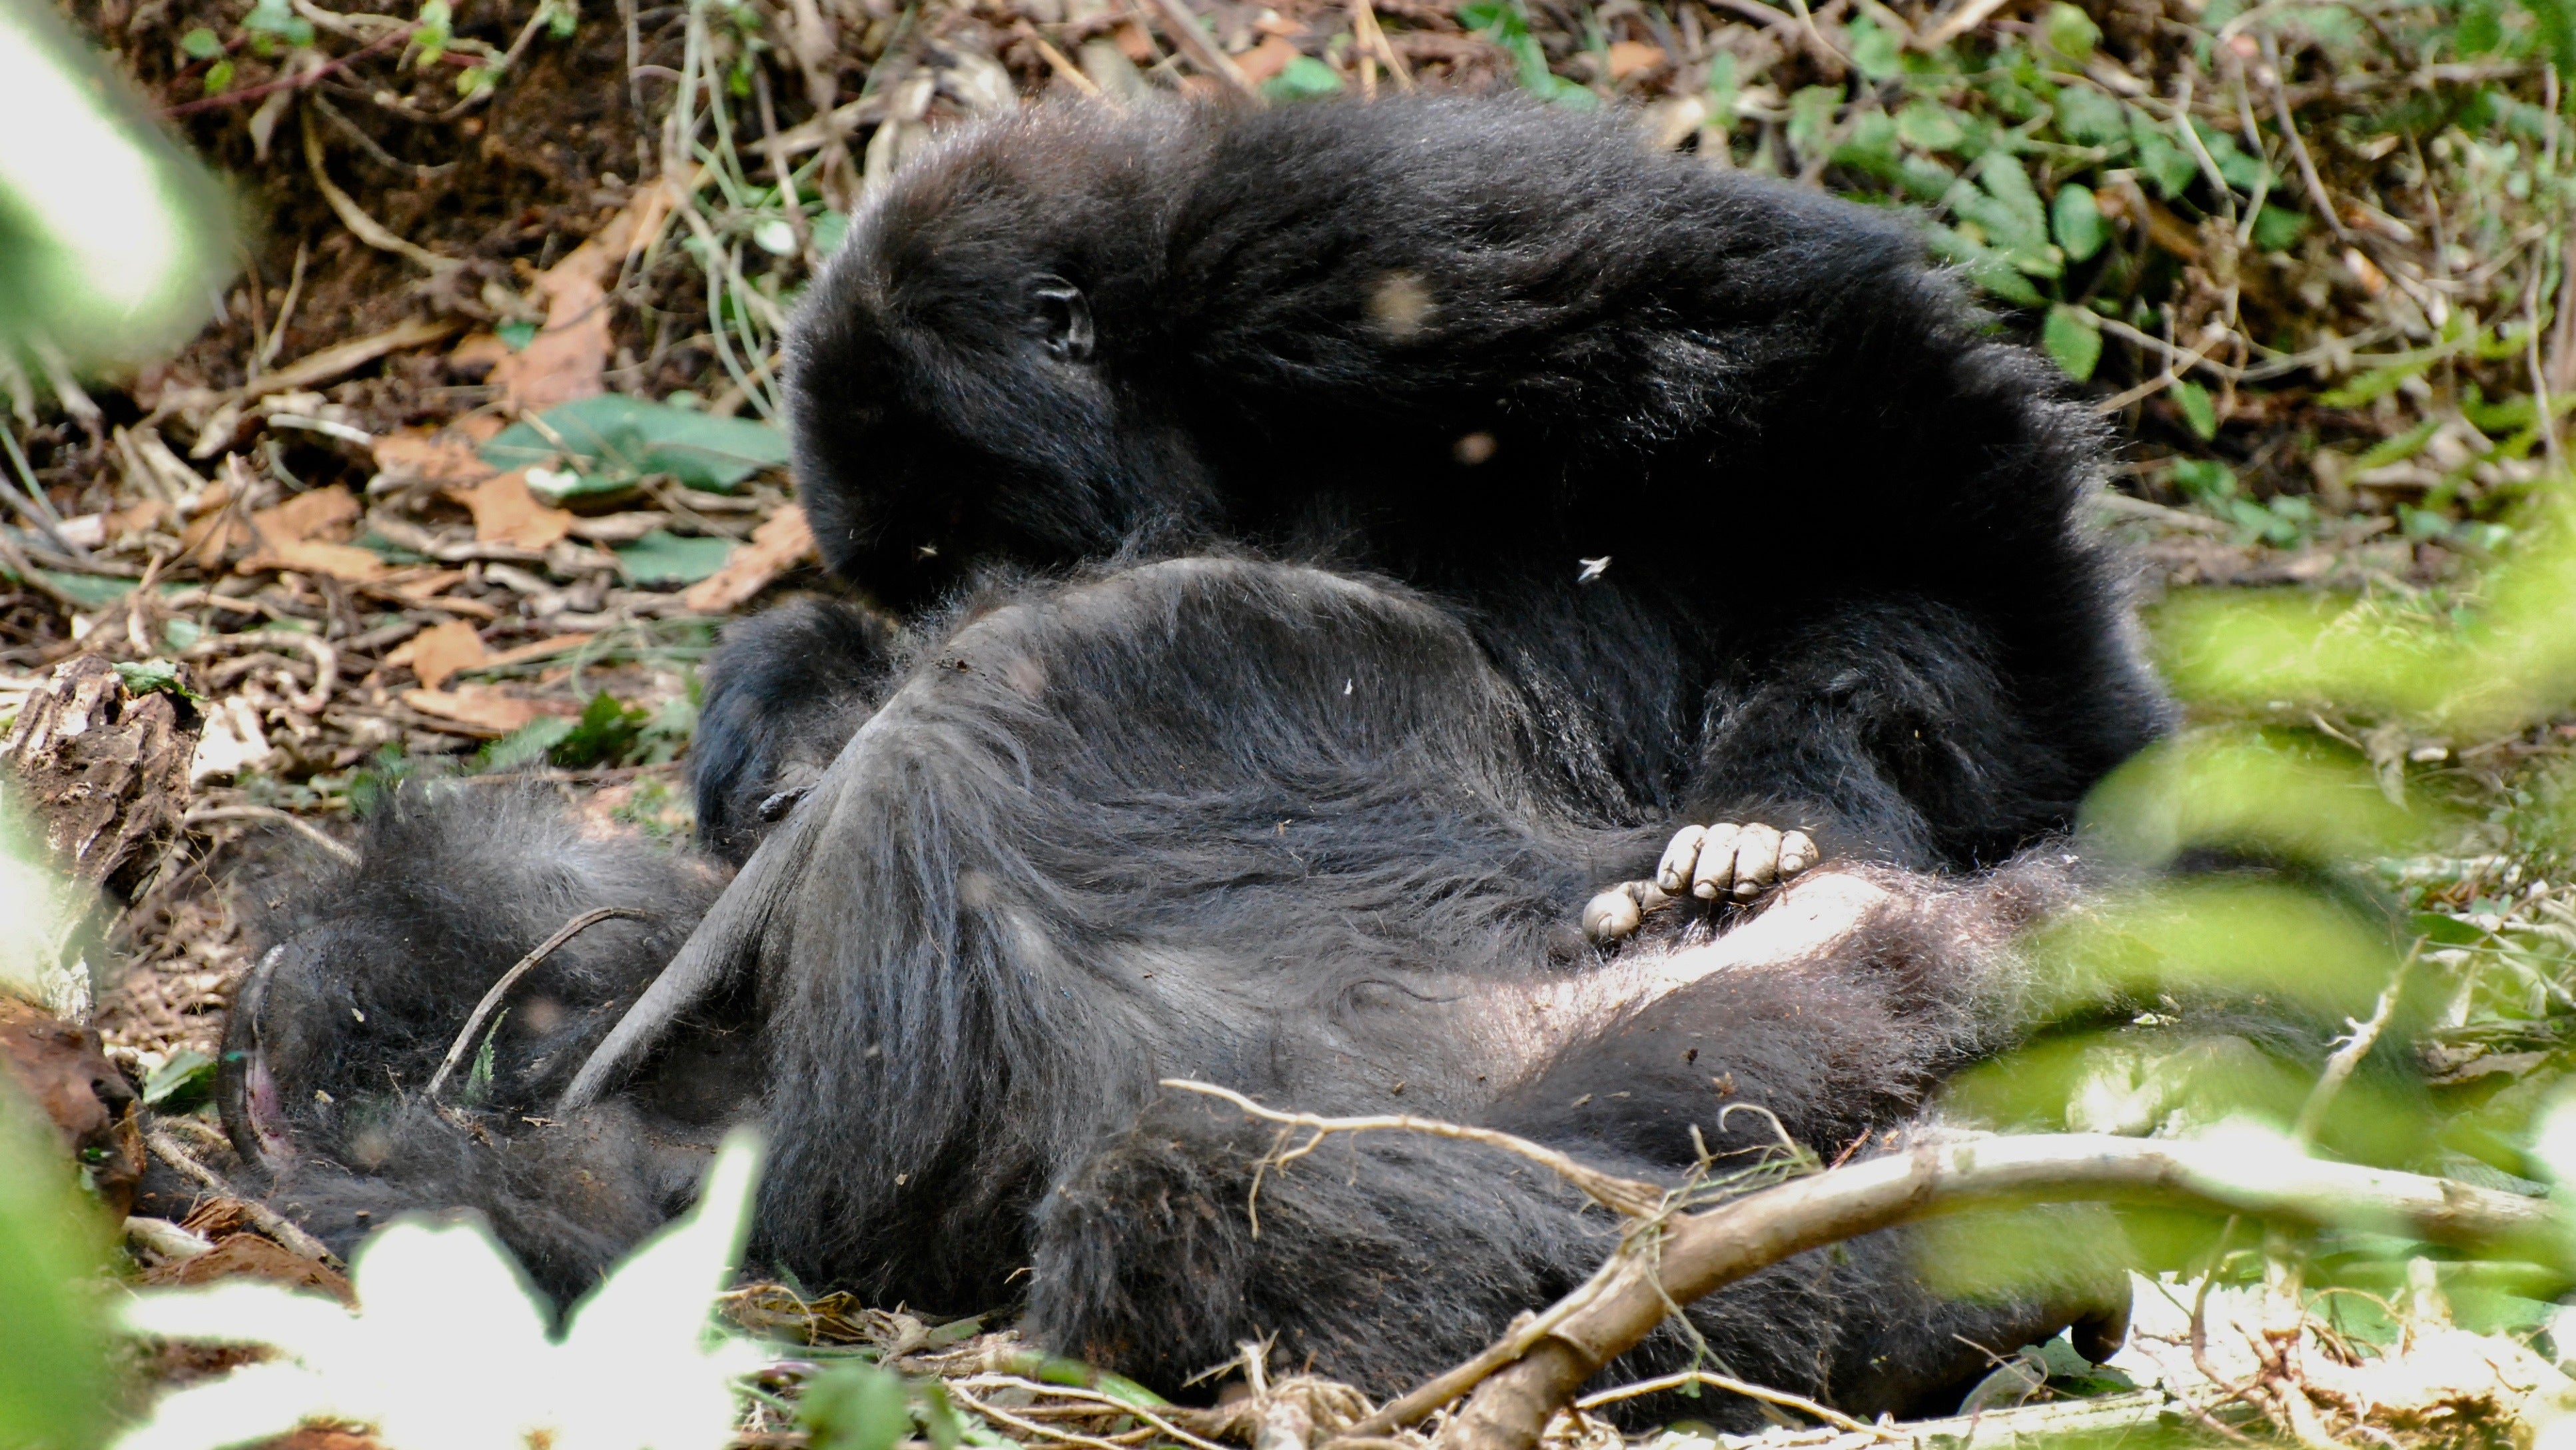 Heartbreaking New Observations Suggest Gorillas May Grieve For Their Dead